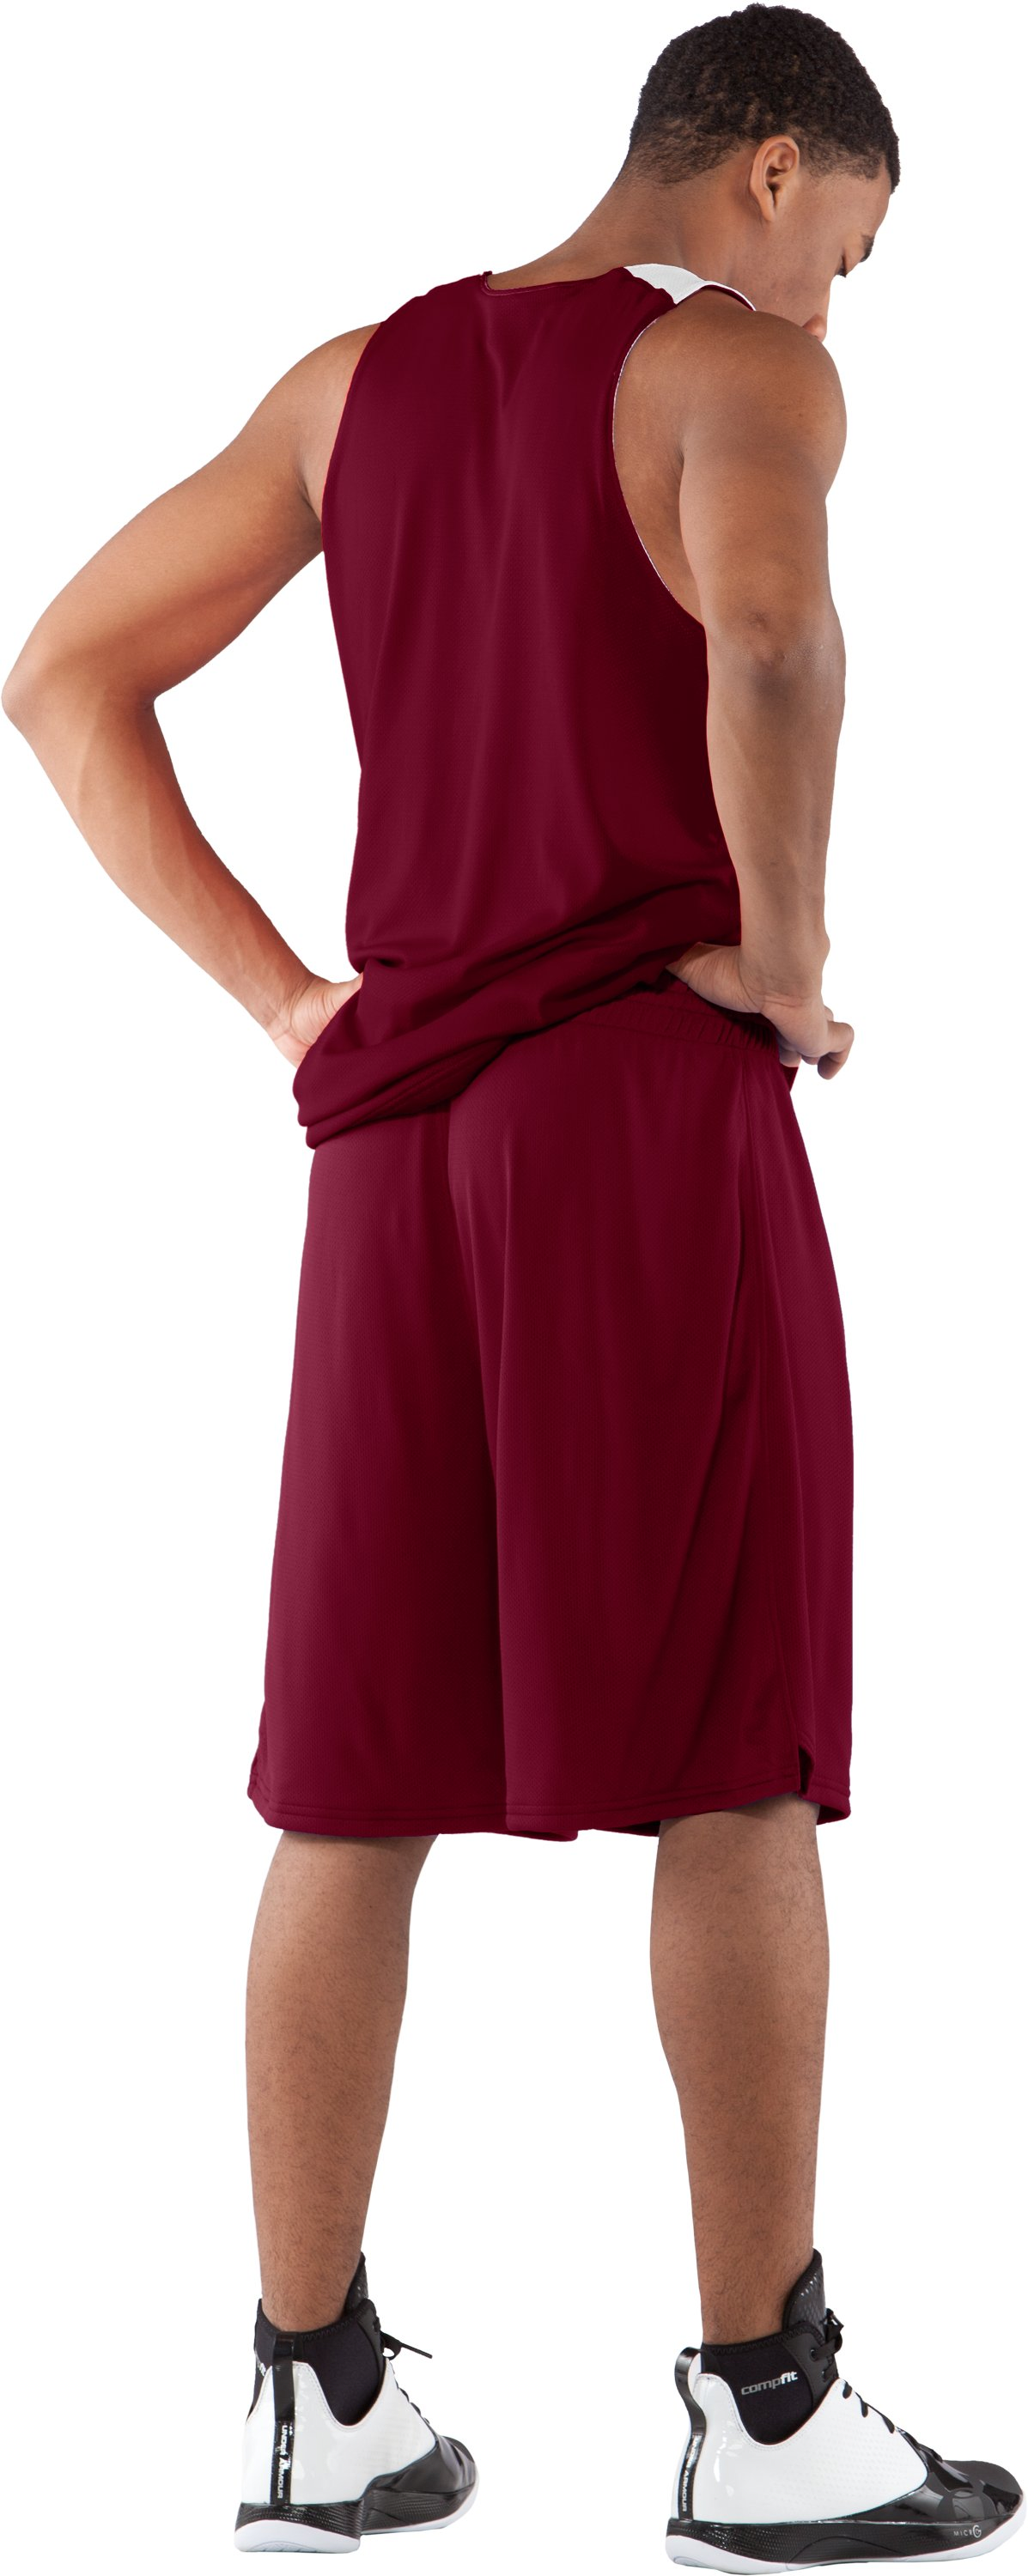 "Men's Dominate 10"" Basketball Shorts, Maroon, Back"